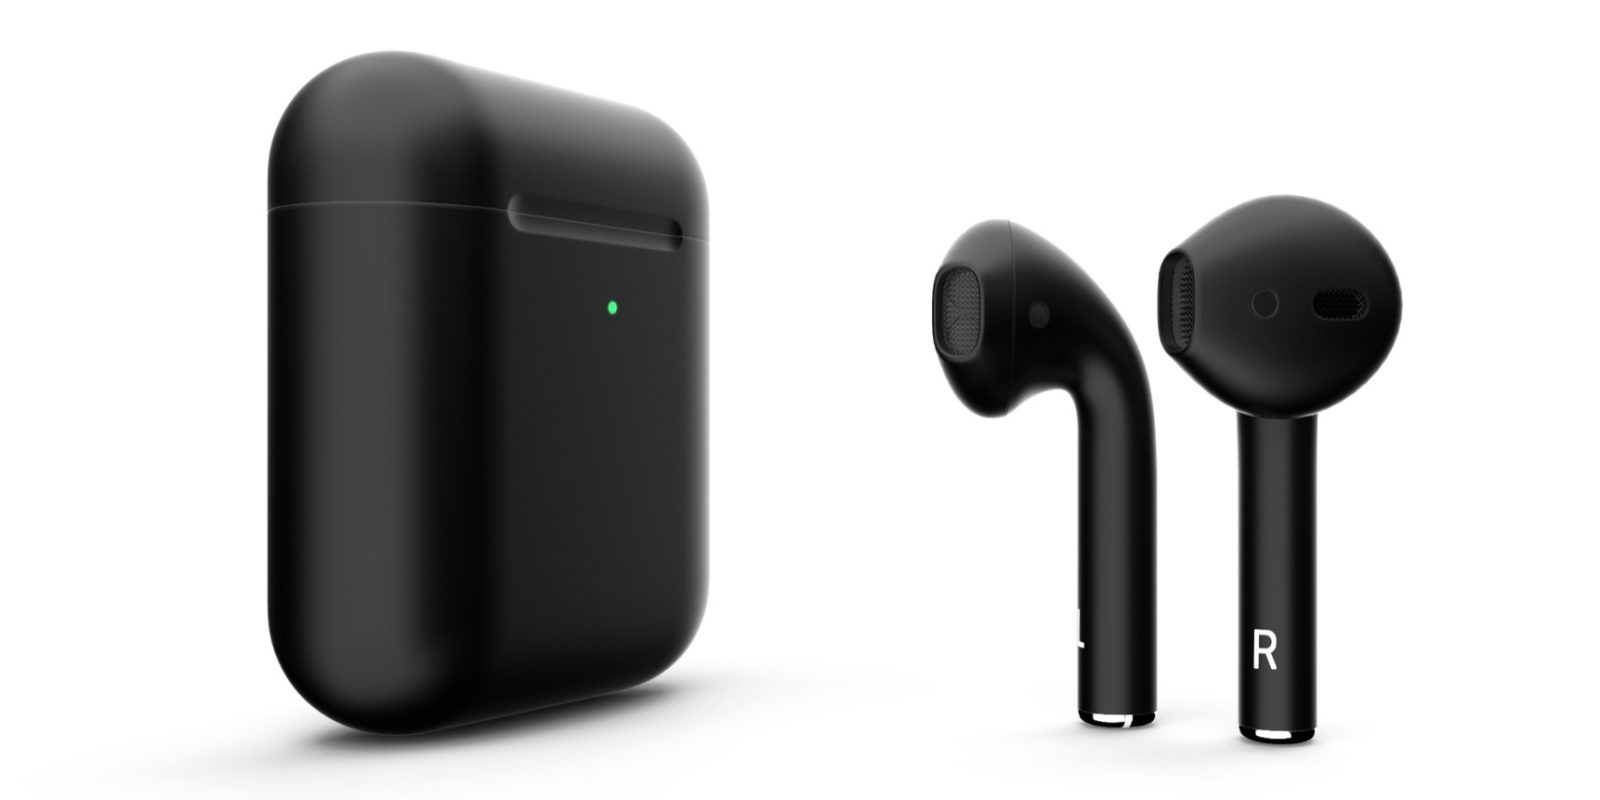 Colorware Custom Airpods 2 In Glossy And Matte Finishes Now